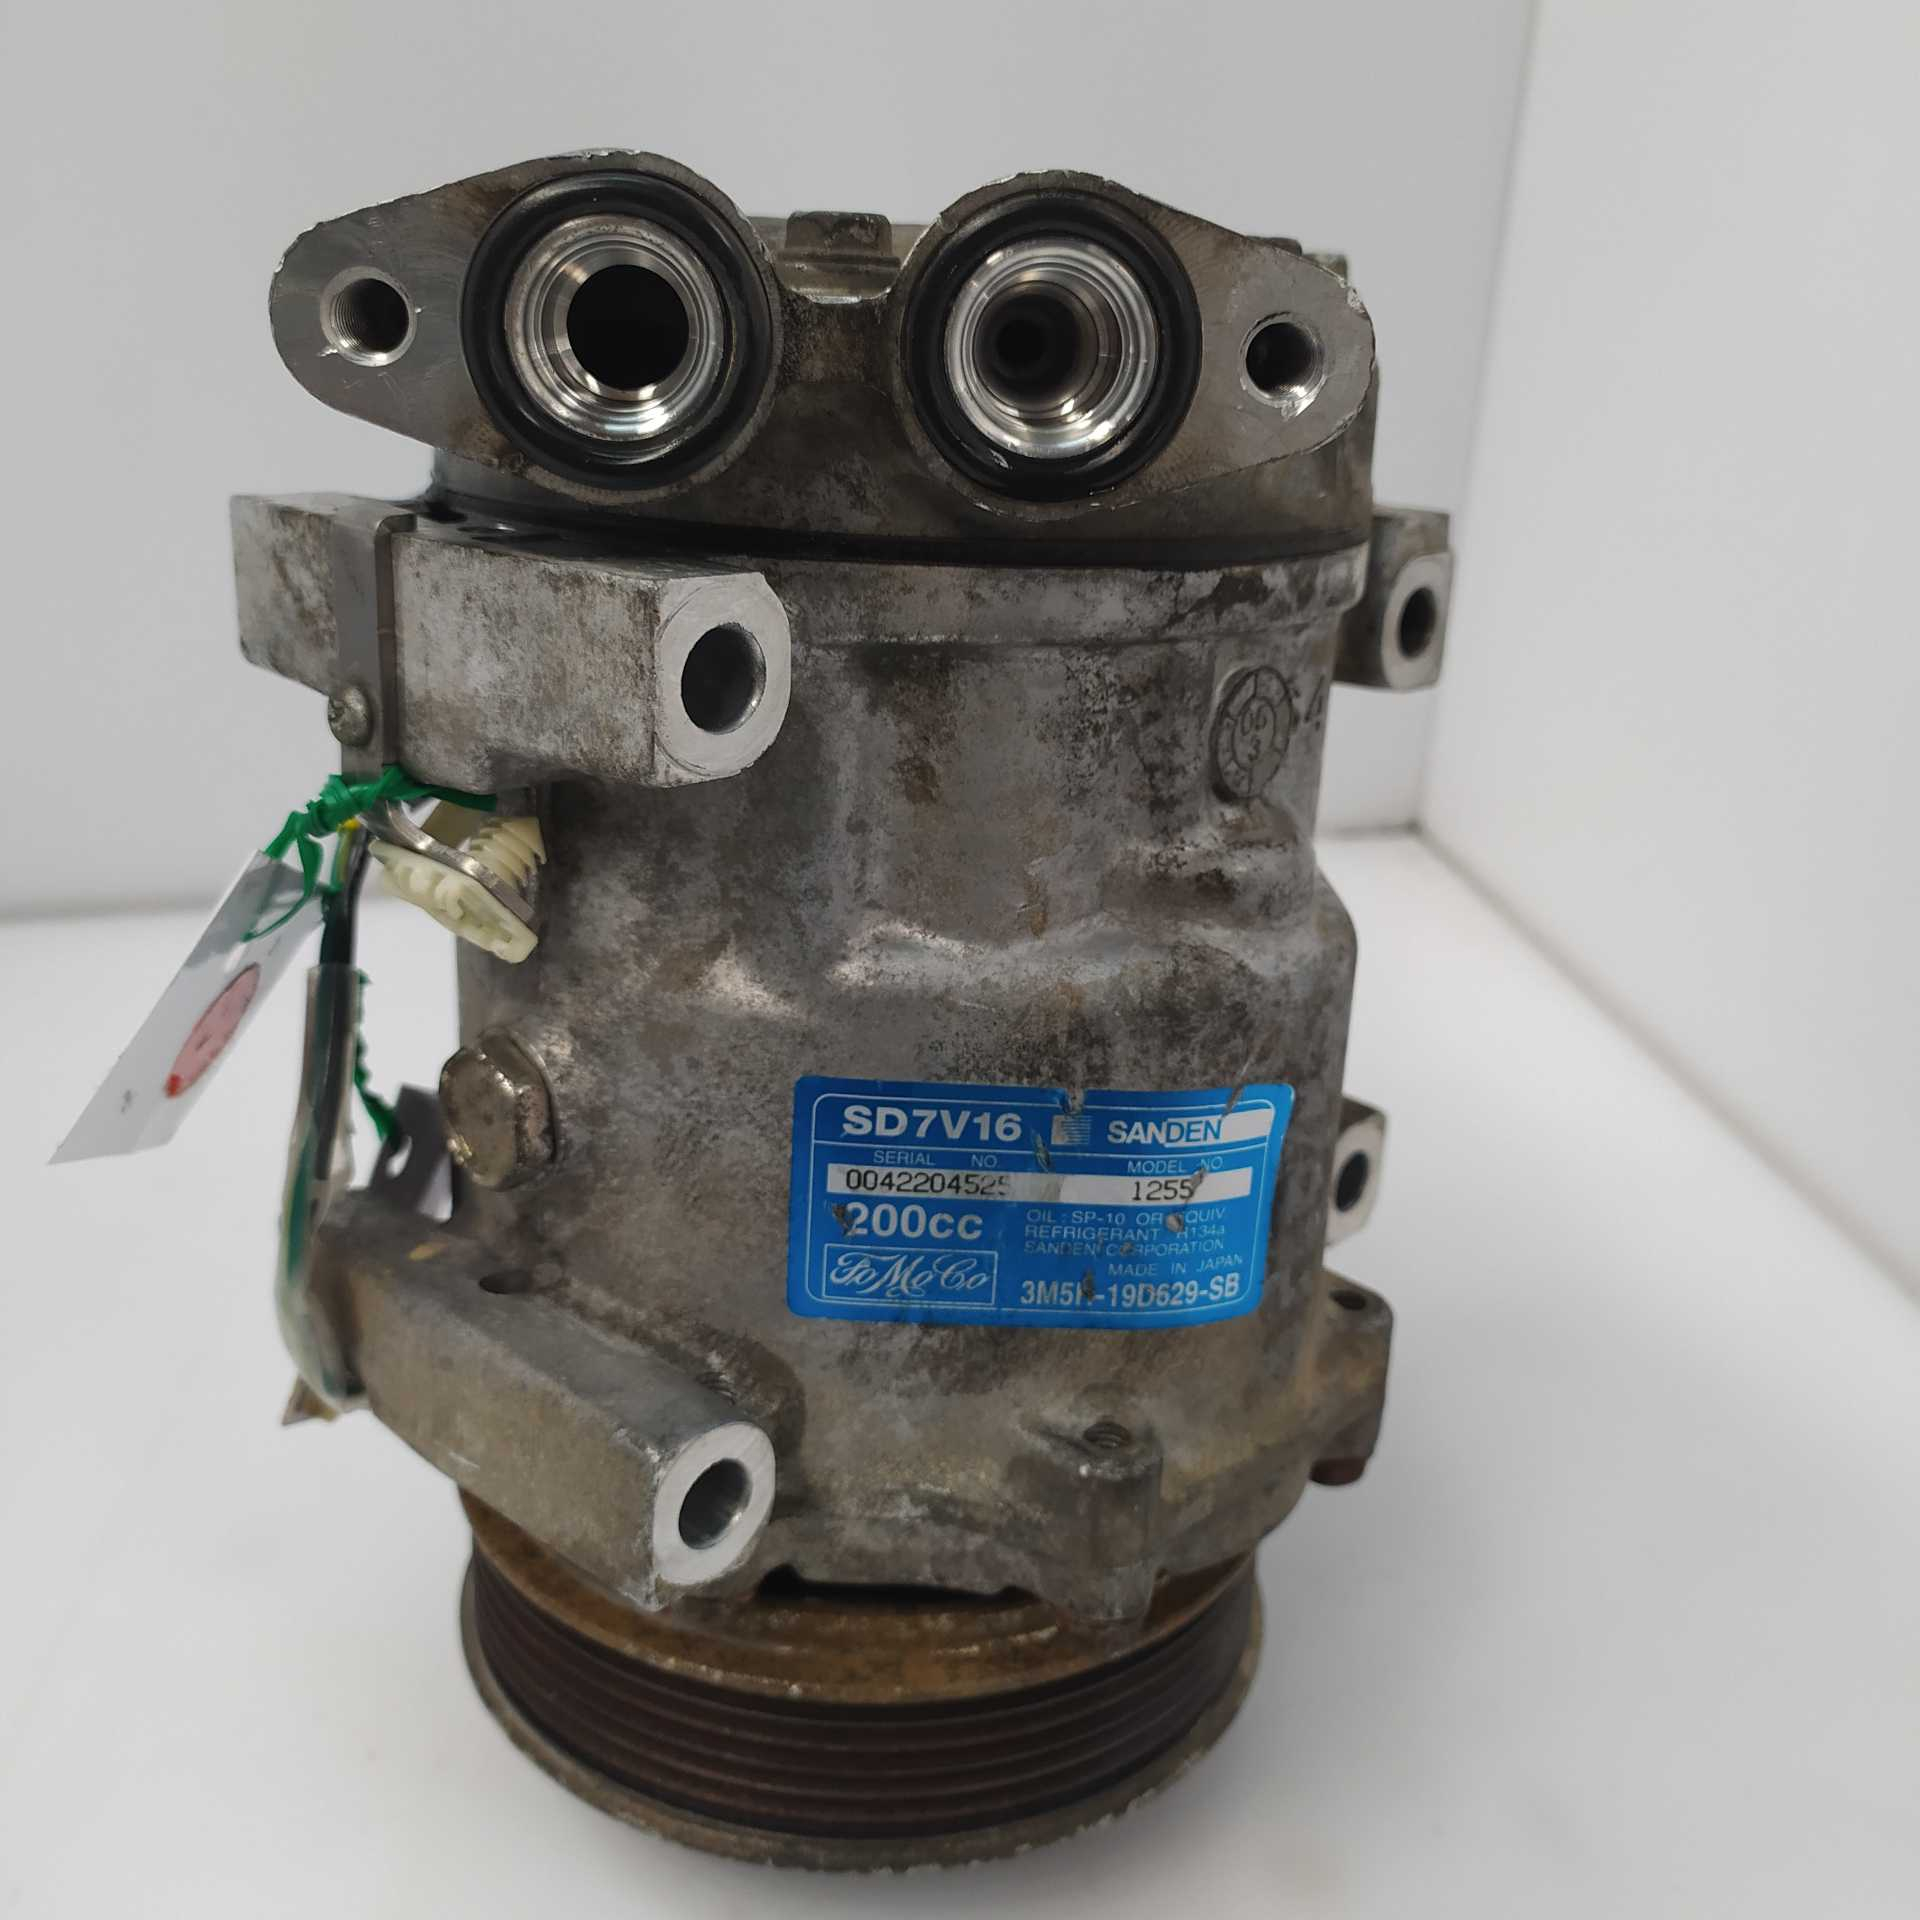 COMPRESOR AIRE ACOND. FORD FOCUS II 2.5 ST (166 KW / 225 CV) (10.2005 - 09.2012)